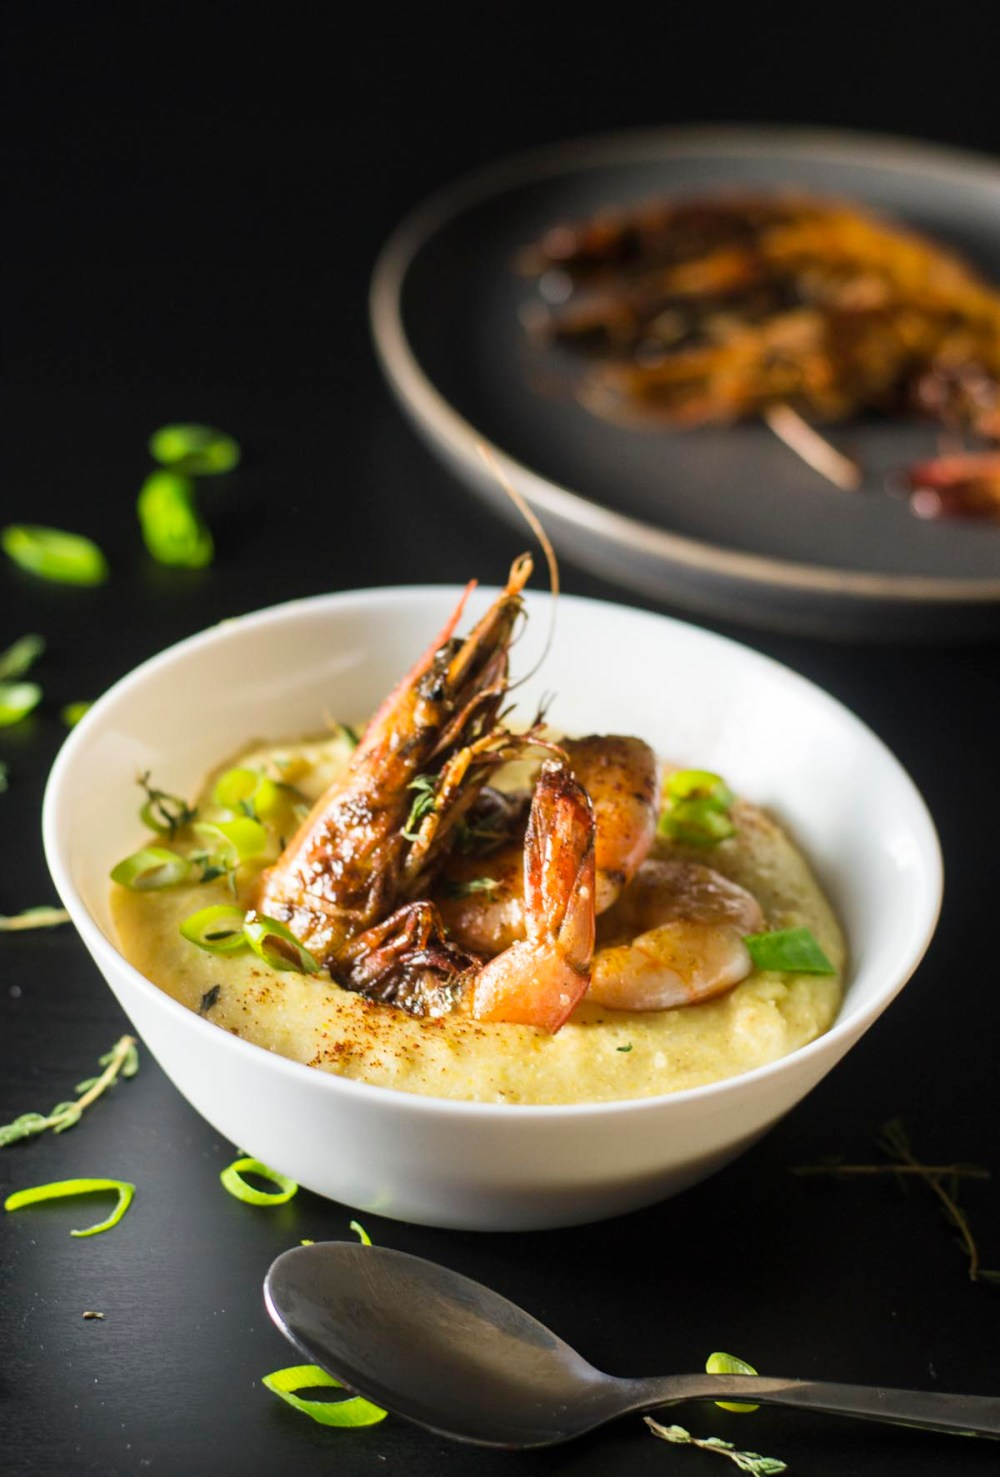 Shrimp and grits in a bowl on table